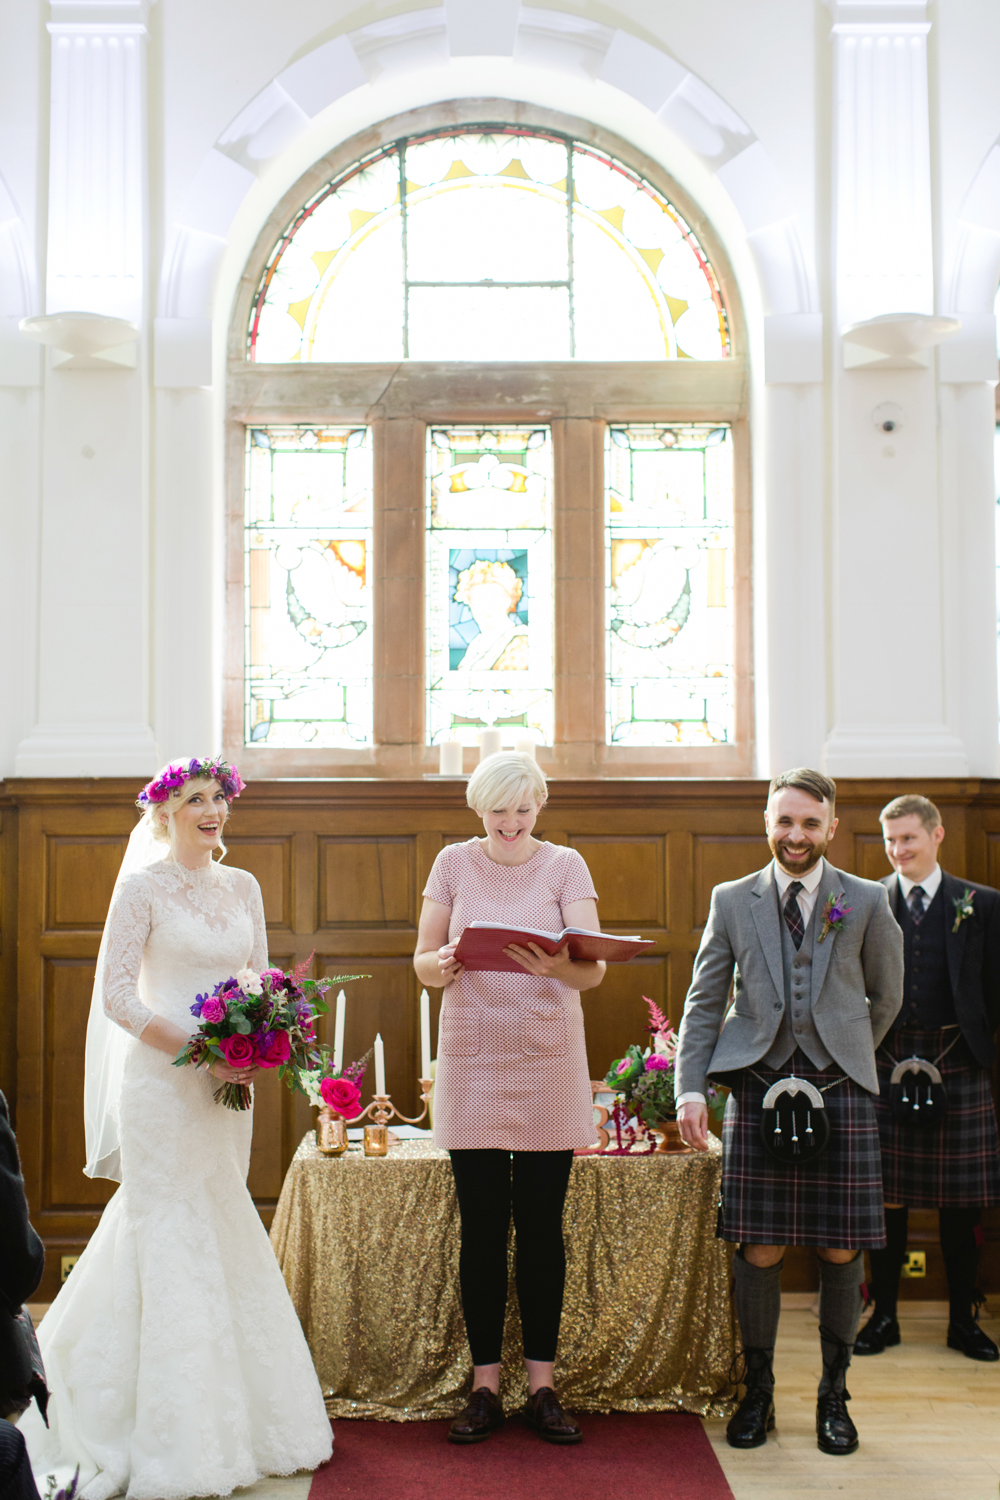 Jewel Toned Wedding at Pollokshields Burgh Hall in Glasgow with Lace ...